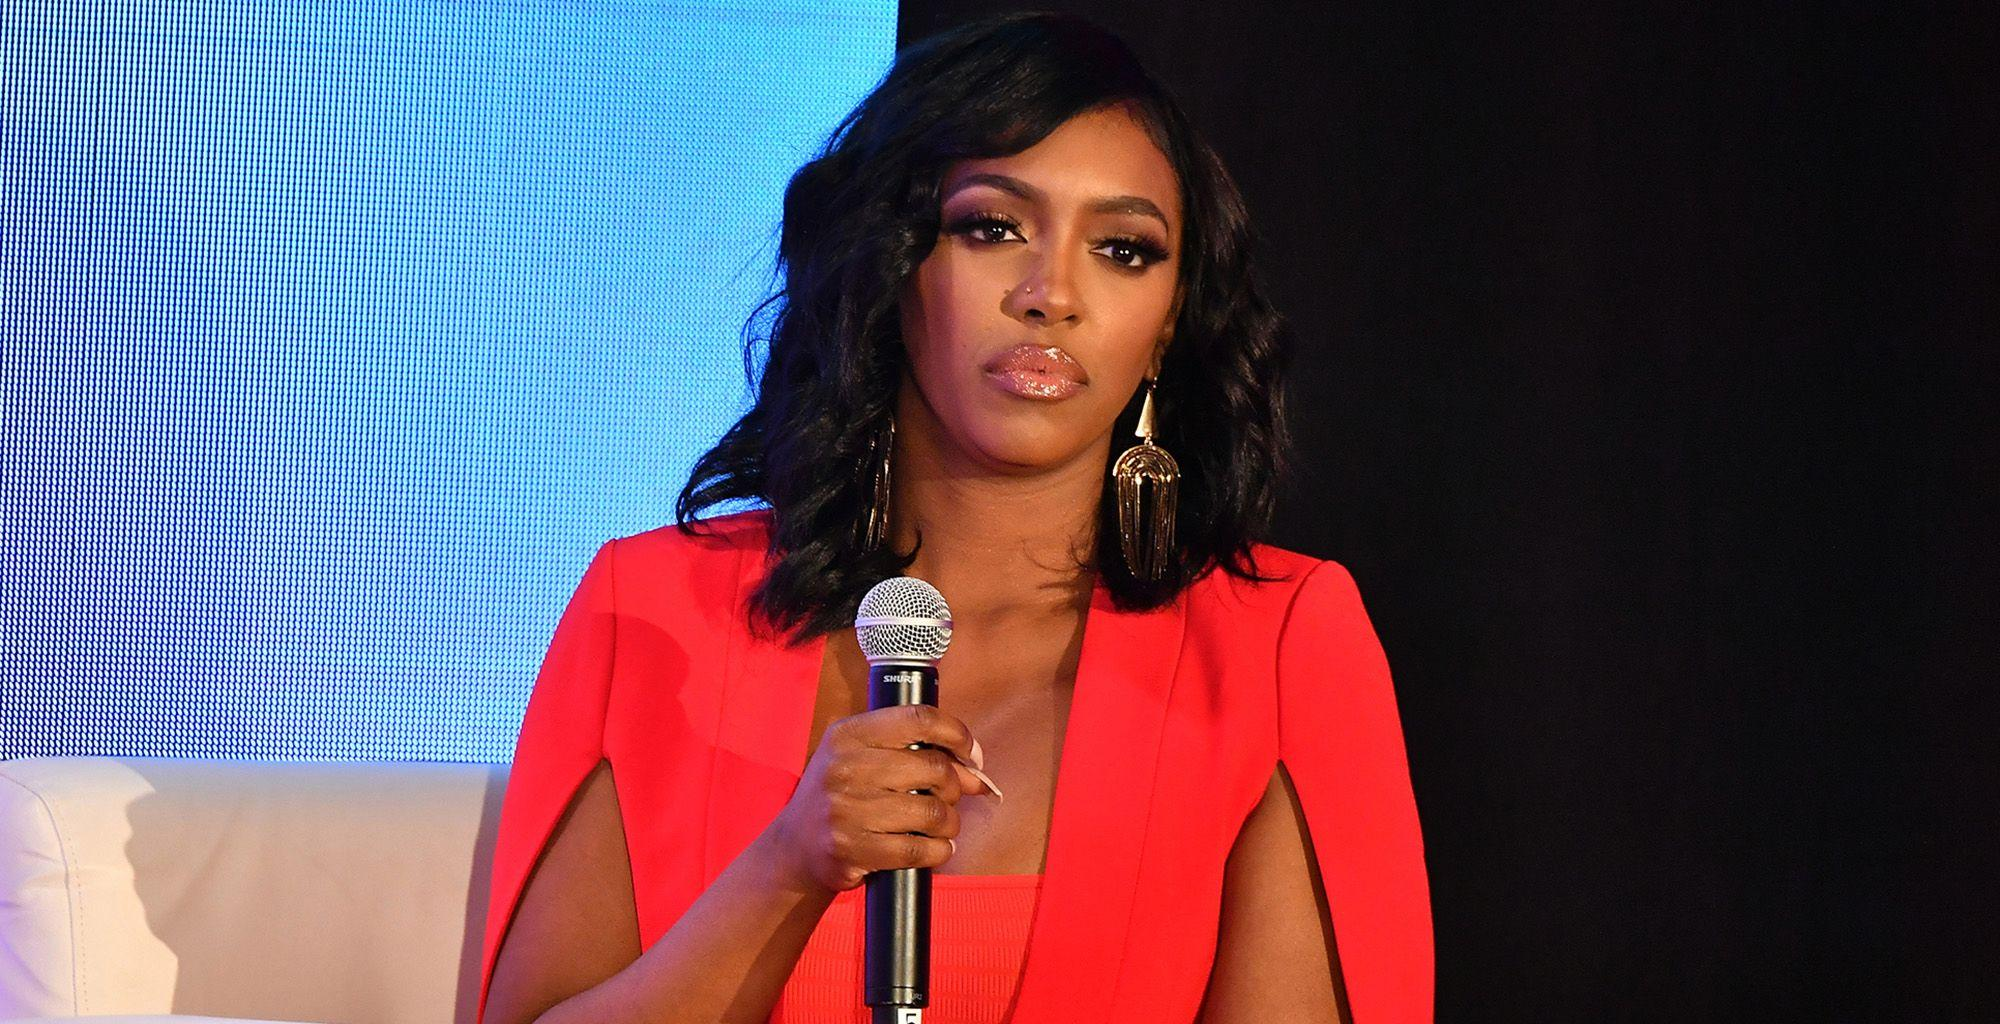 Porsha Williams Reveals Fans One Of Her Favorite Shows - Check Out Her Message